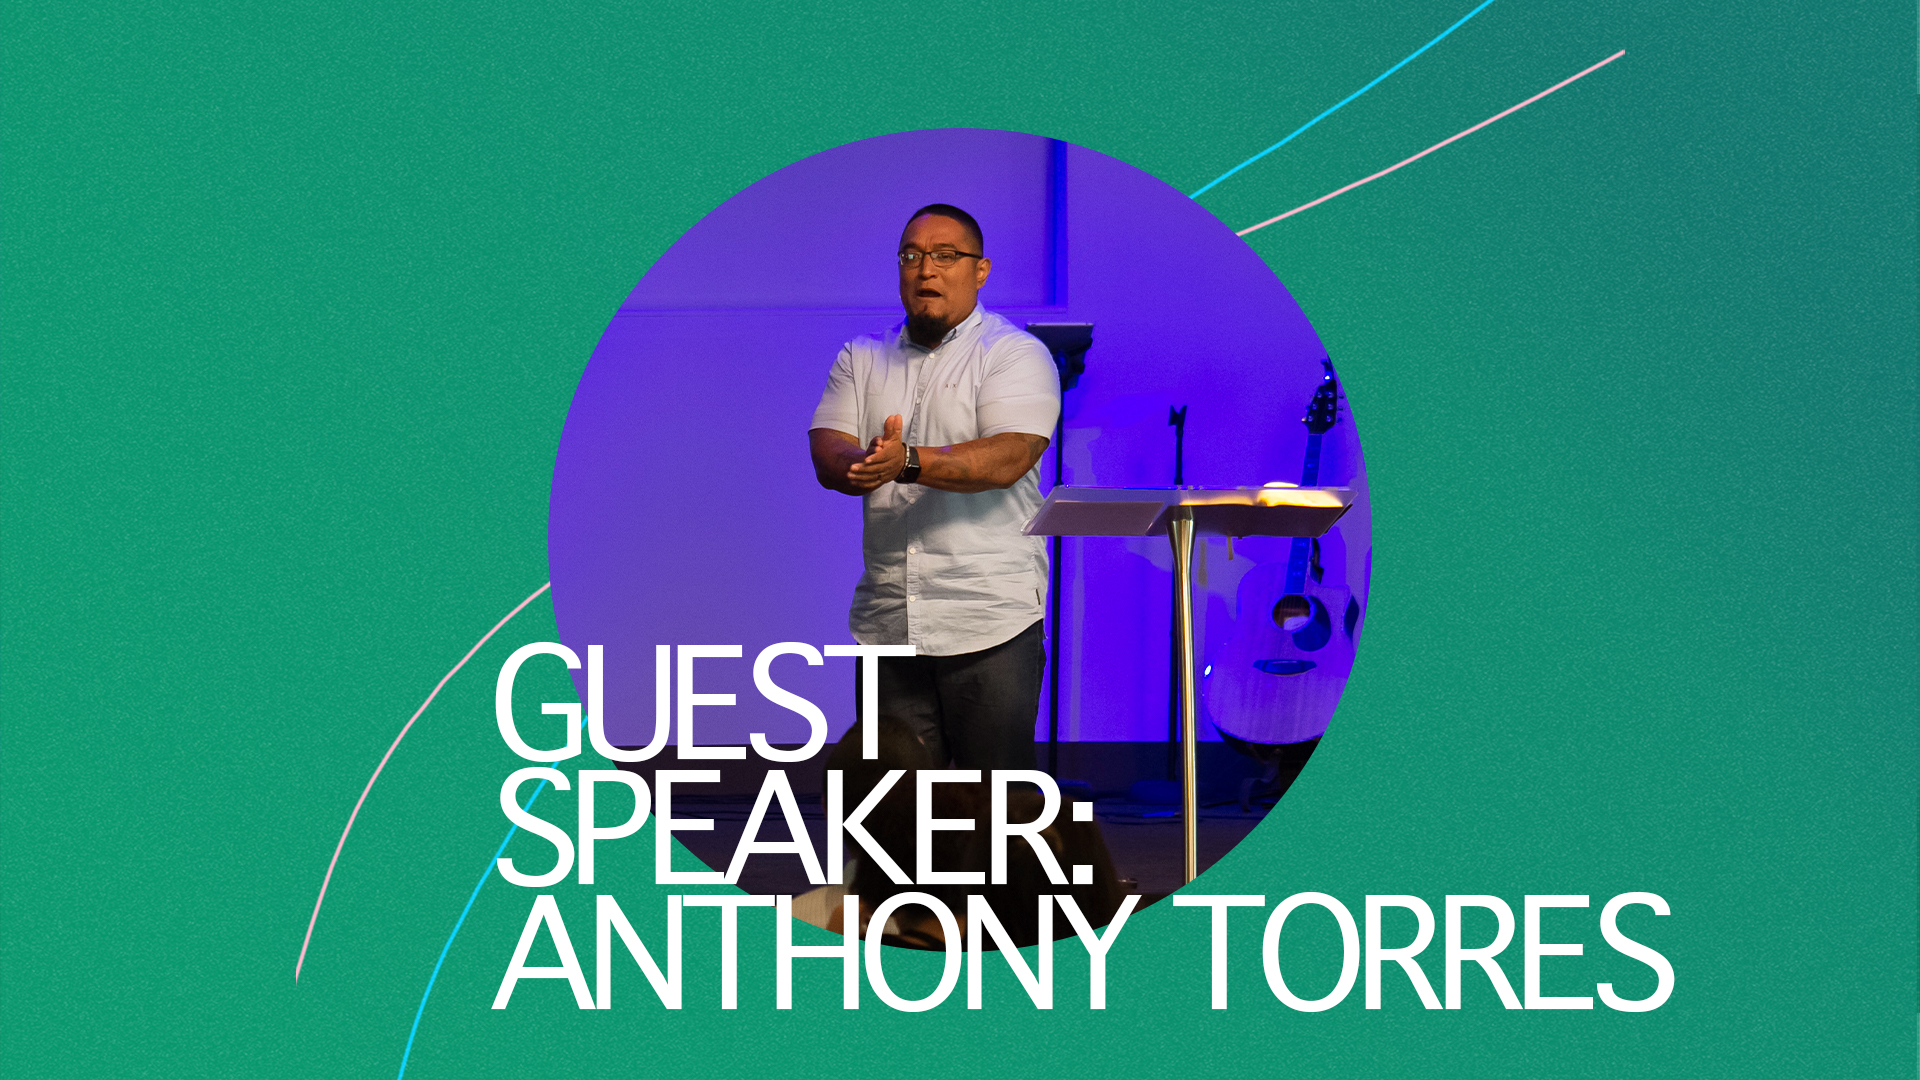 gs anthony torres.jpg